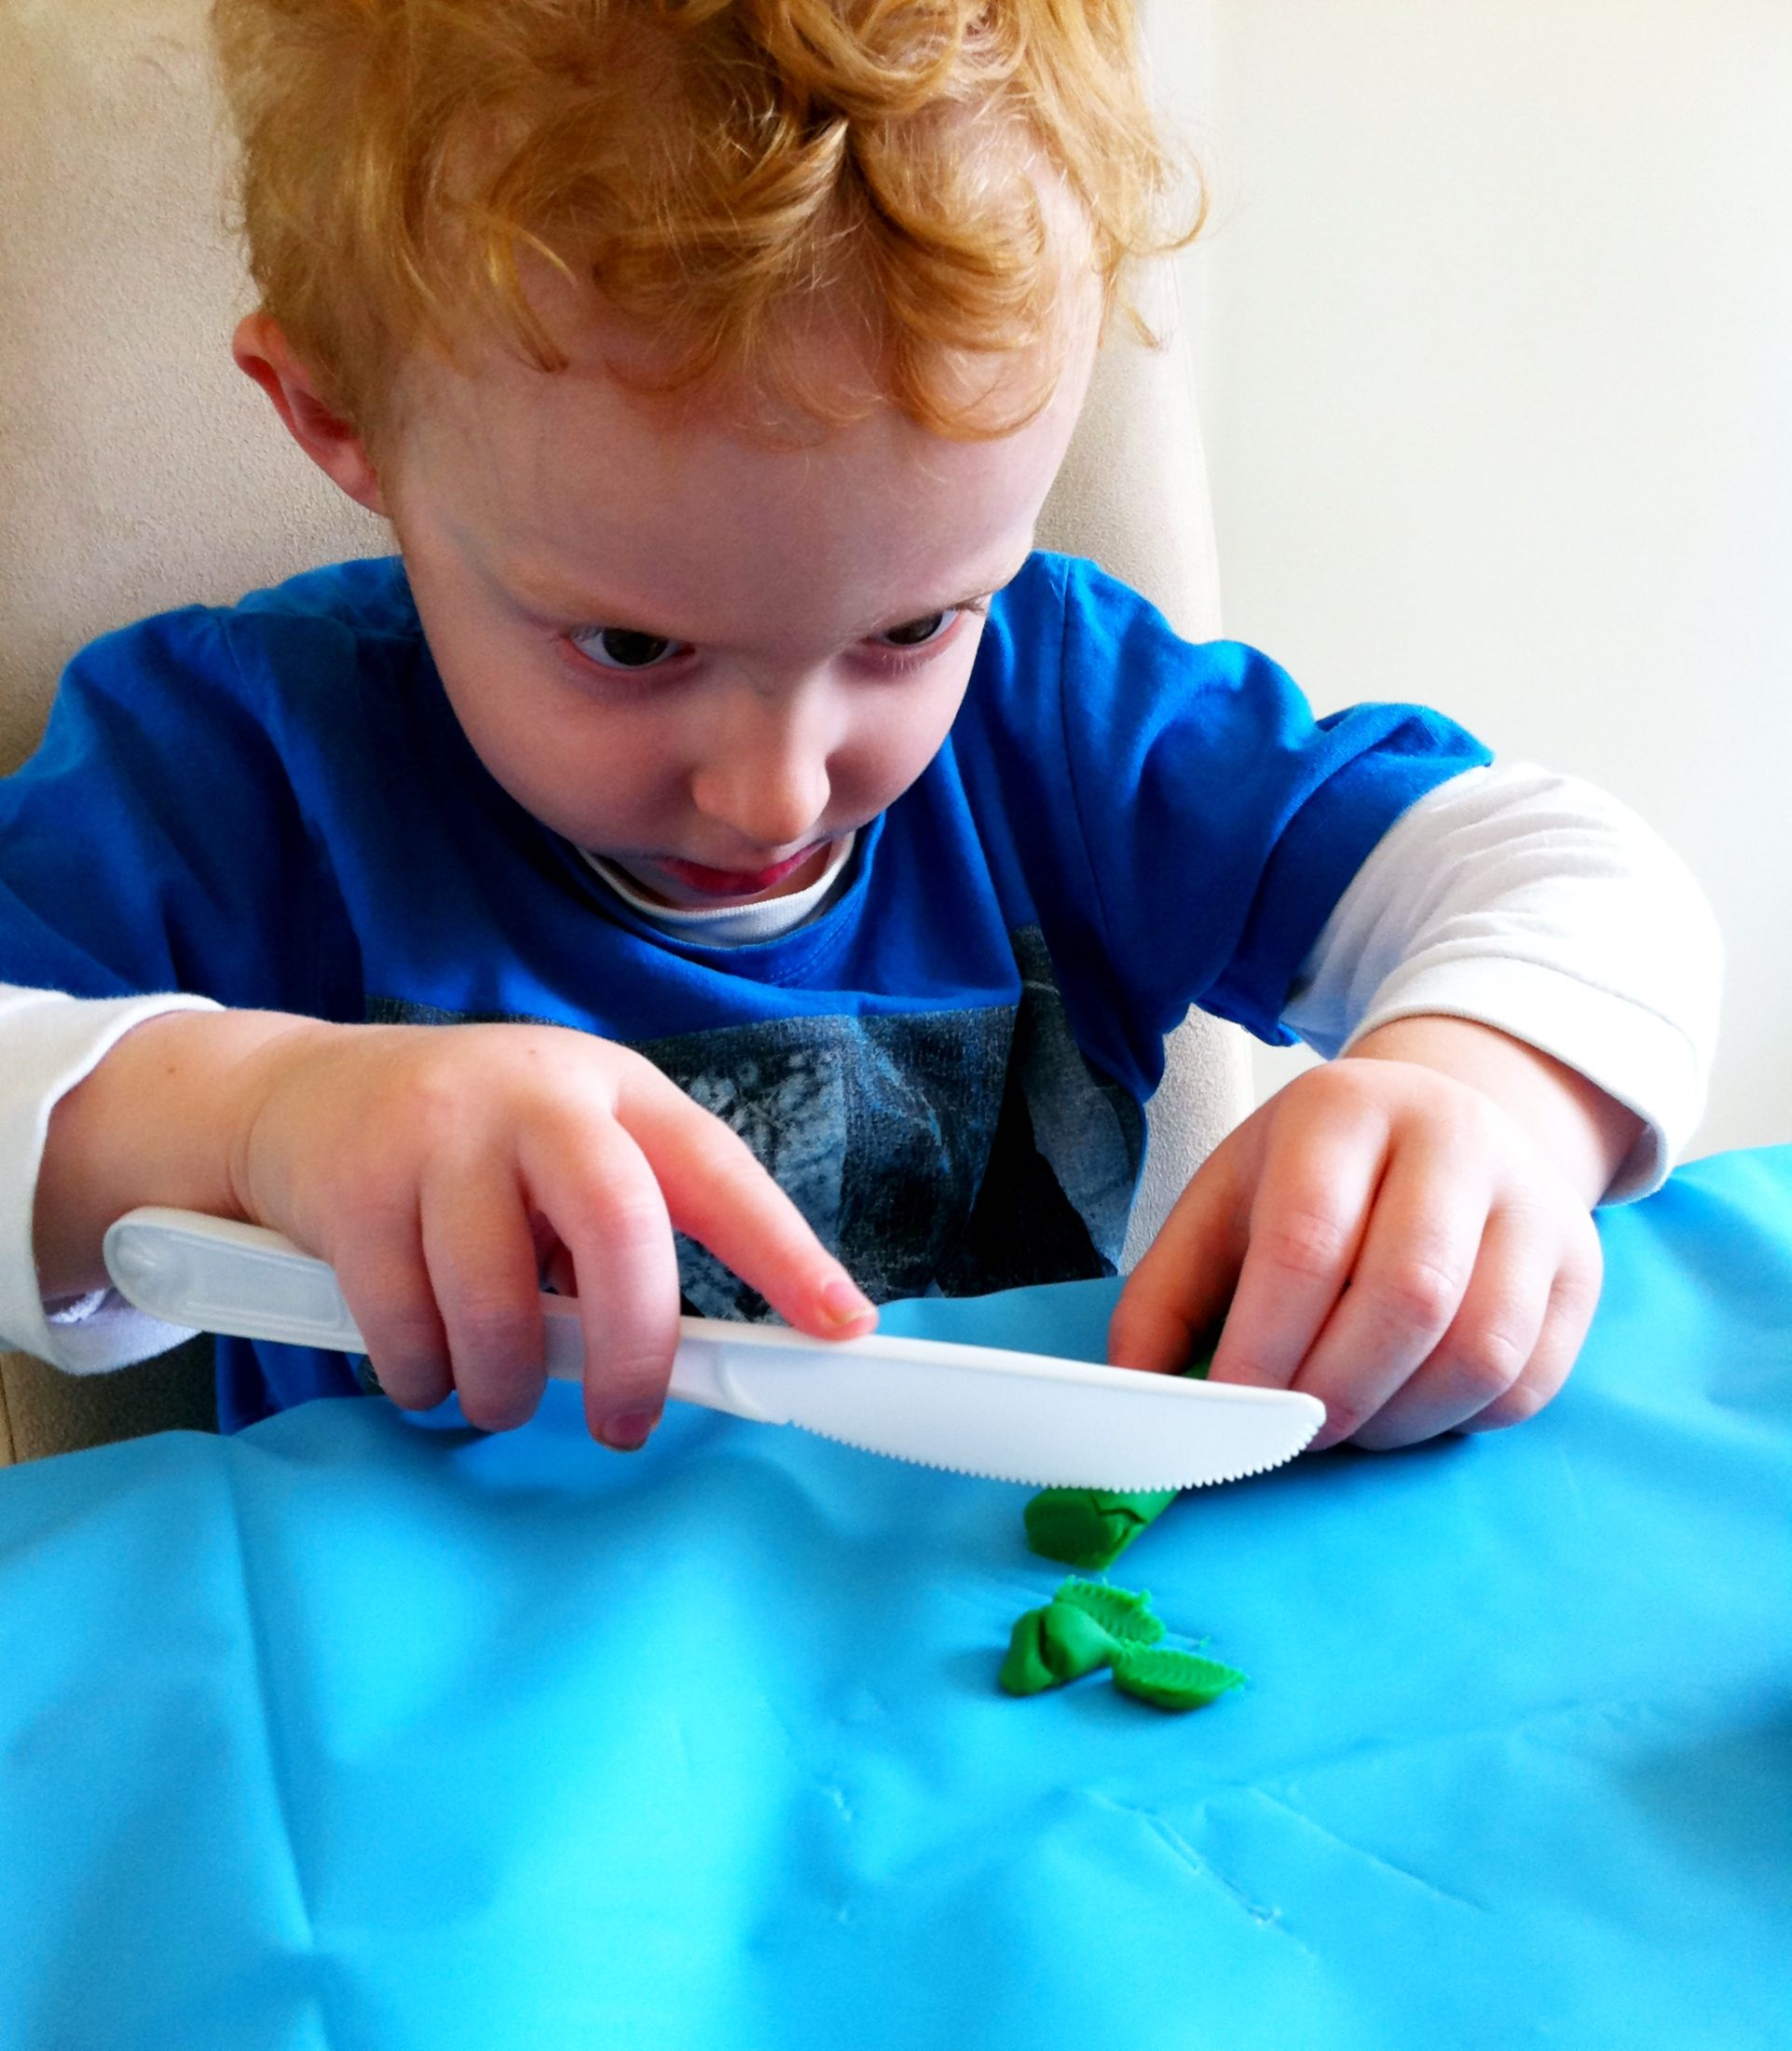 Cutting Skills With Play Dough